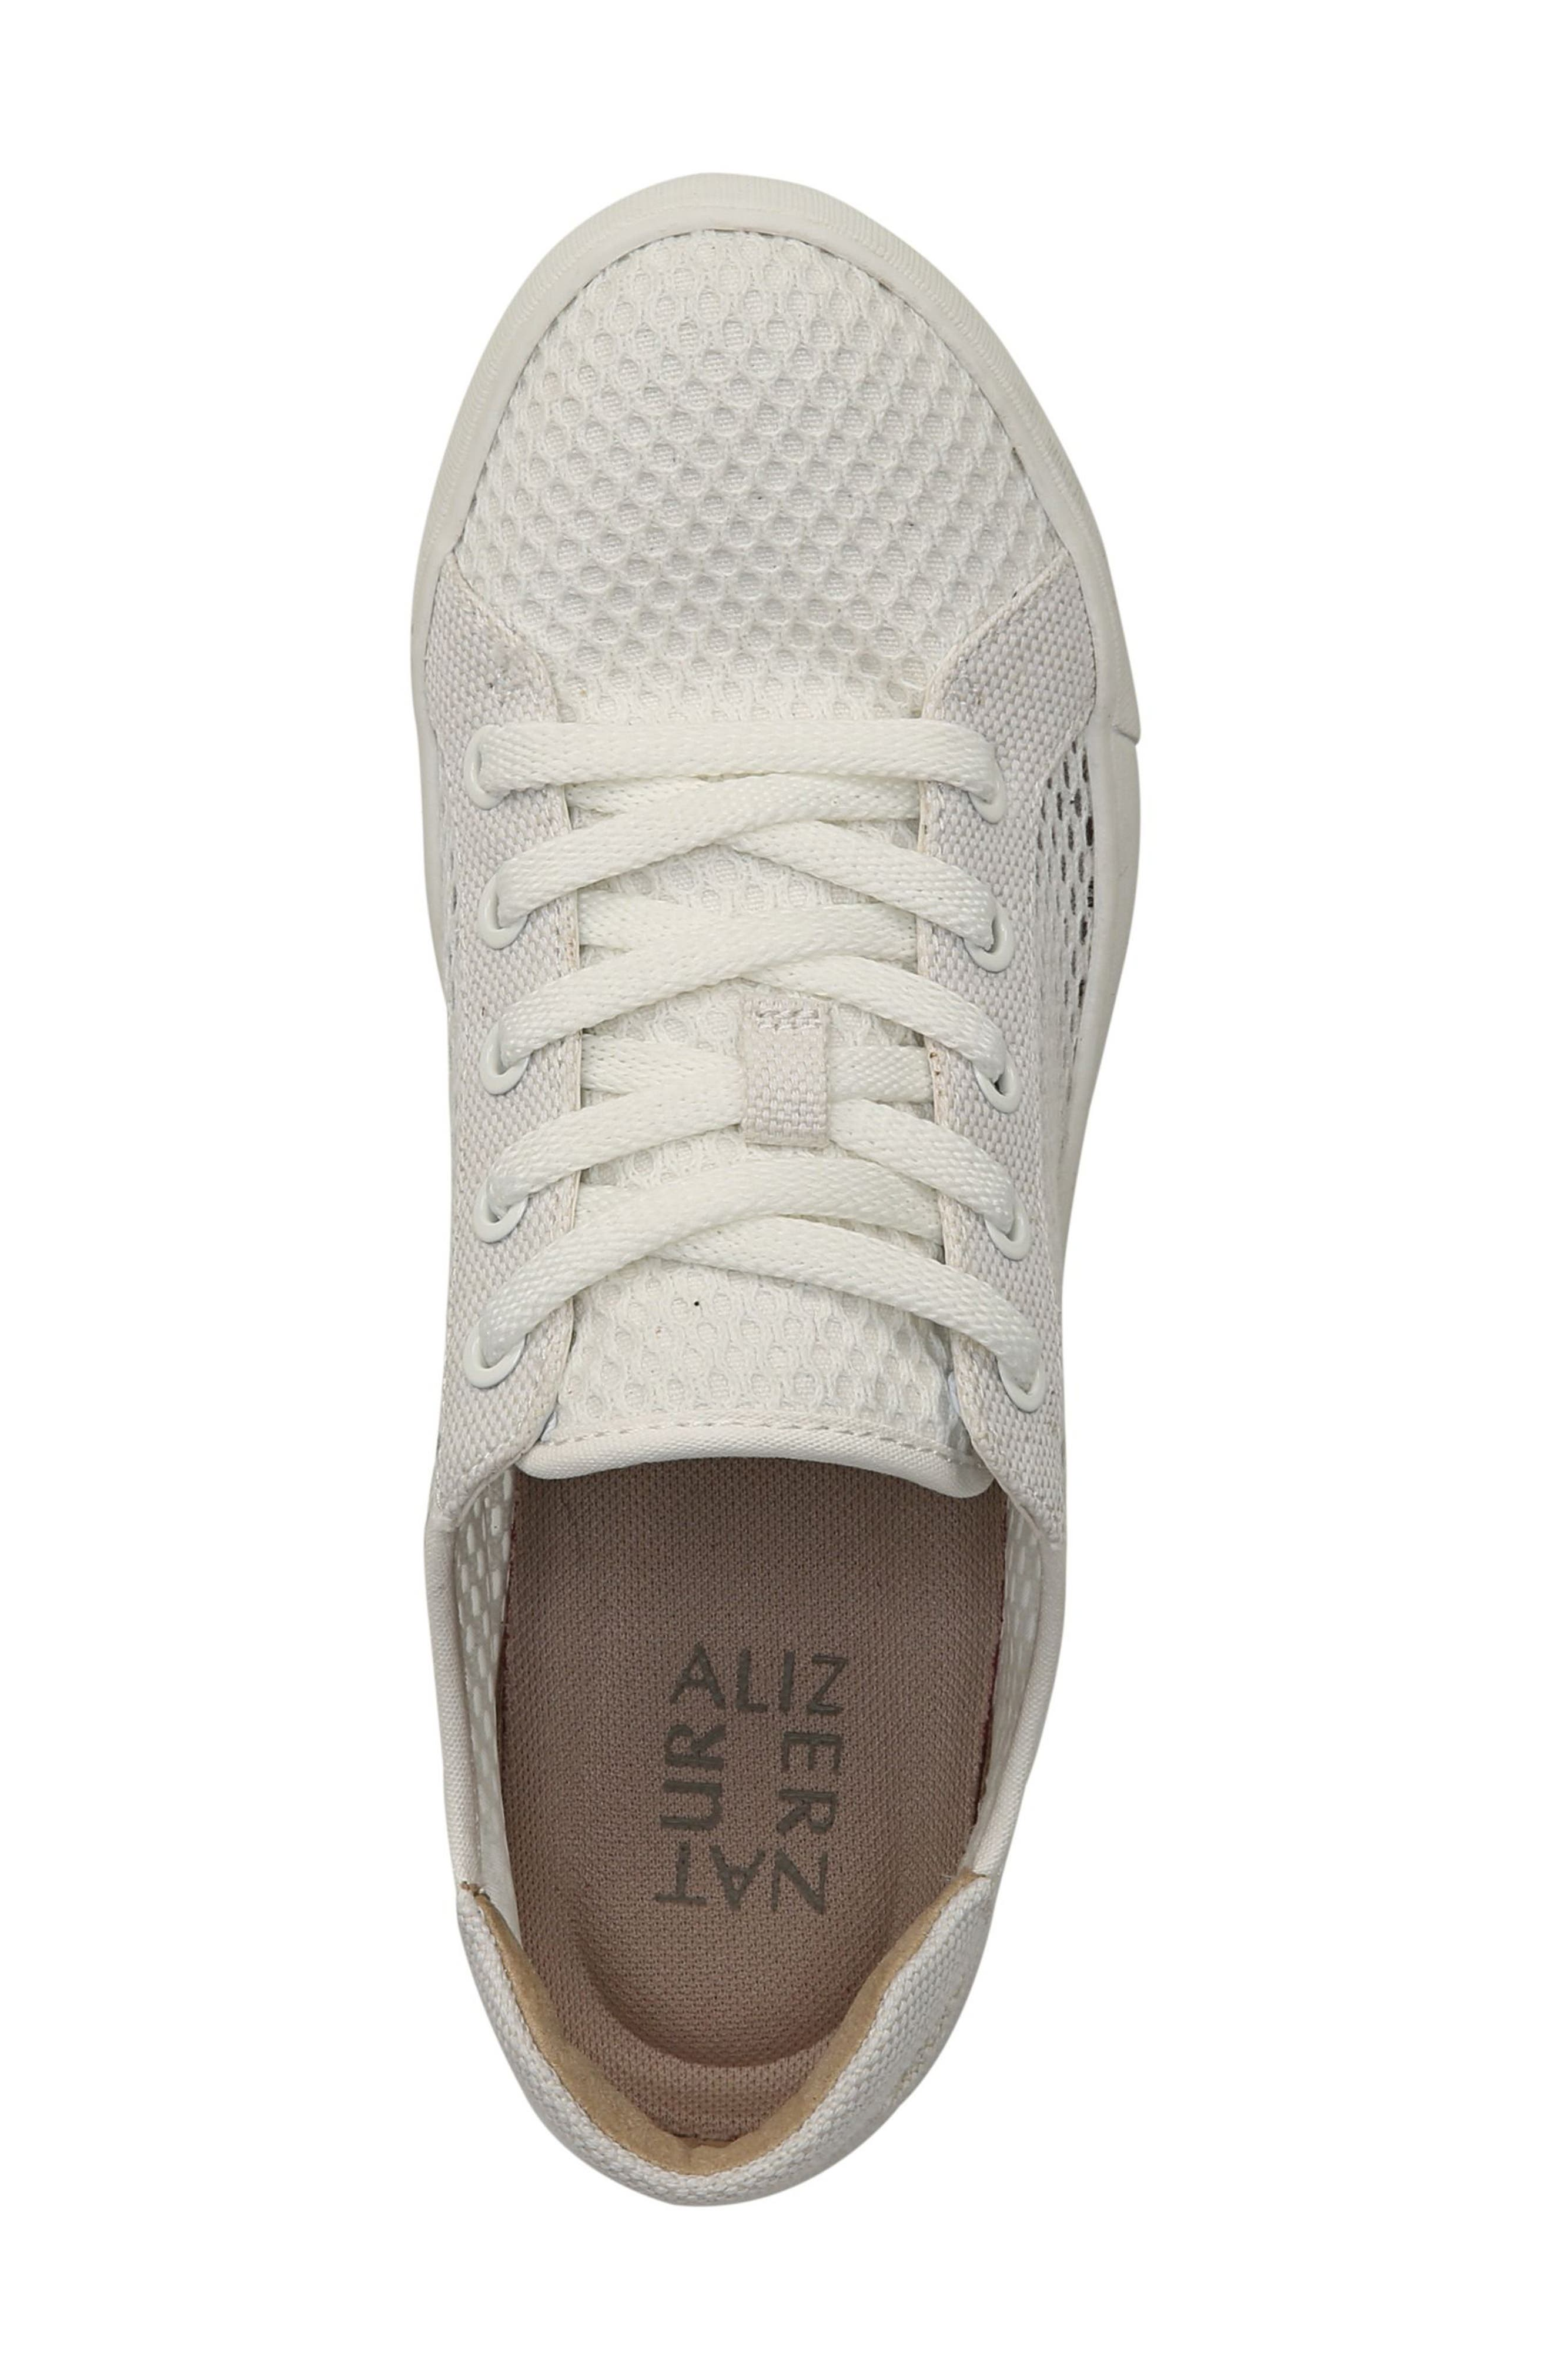 NATURALIZER, Morrison III Perforated Sneaker, Alternate thumbnail 5, color, WHITE FABRIC